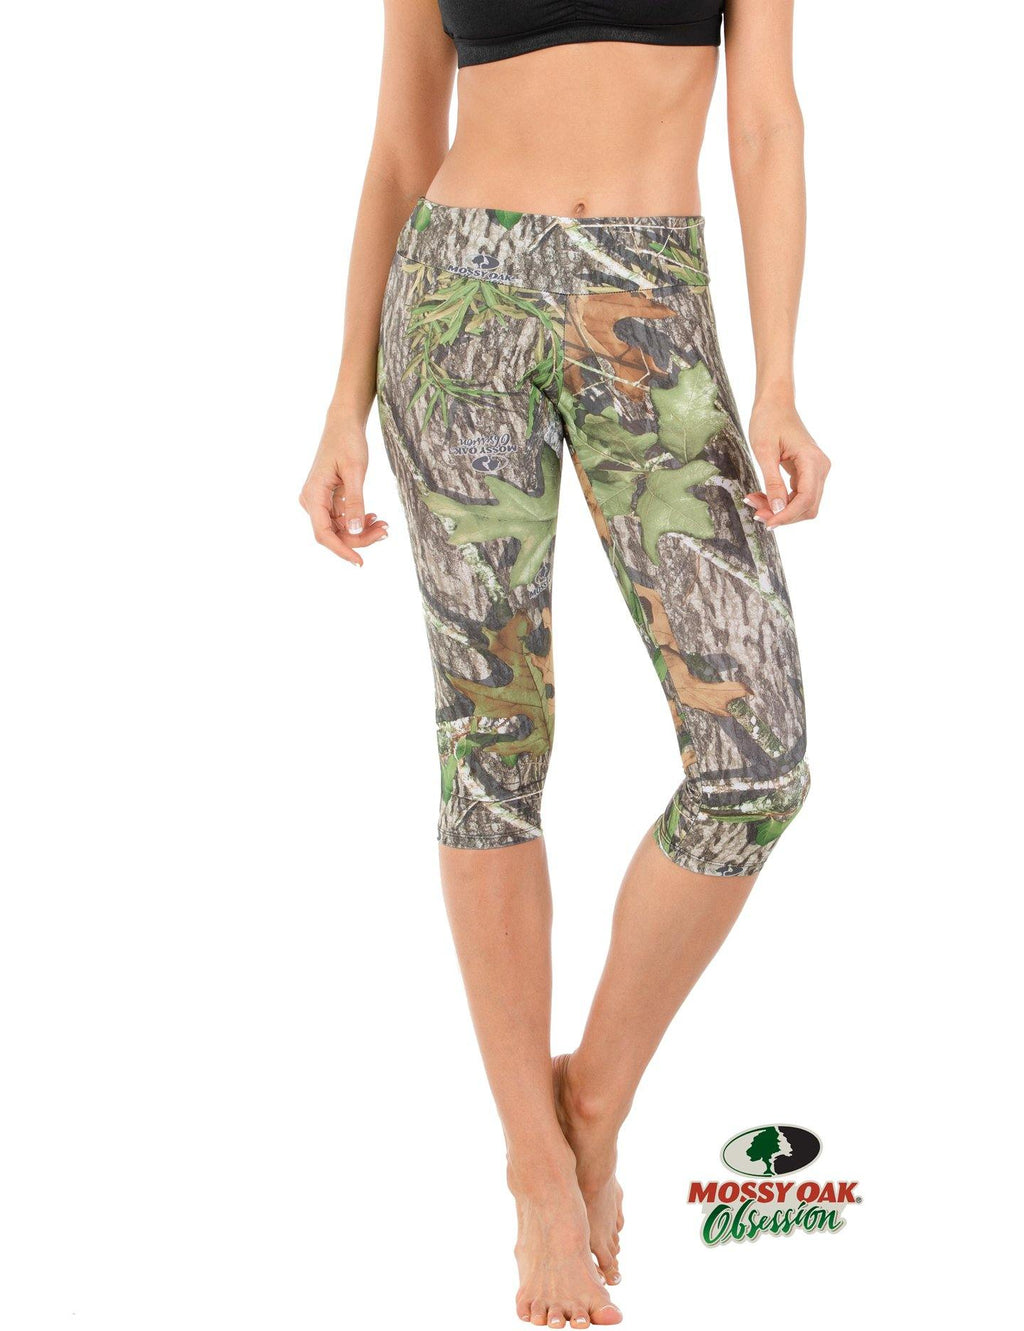 Apsara Leggings Low Waist Capri, Mossy Oak Obsession